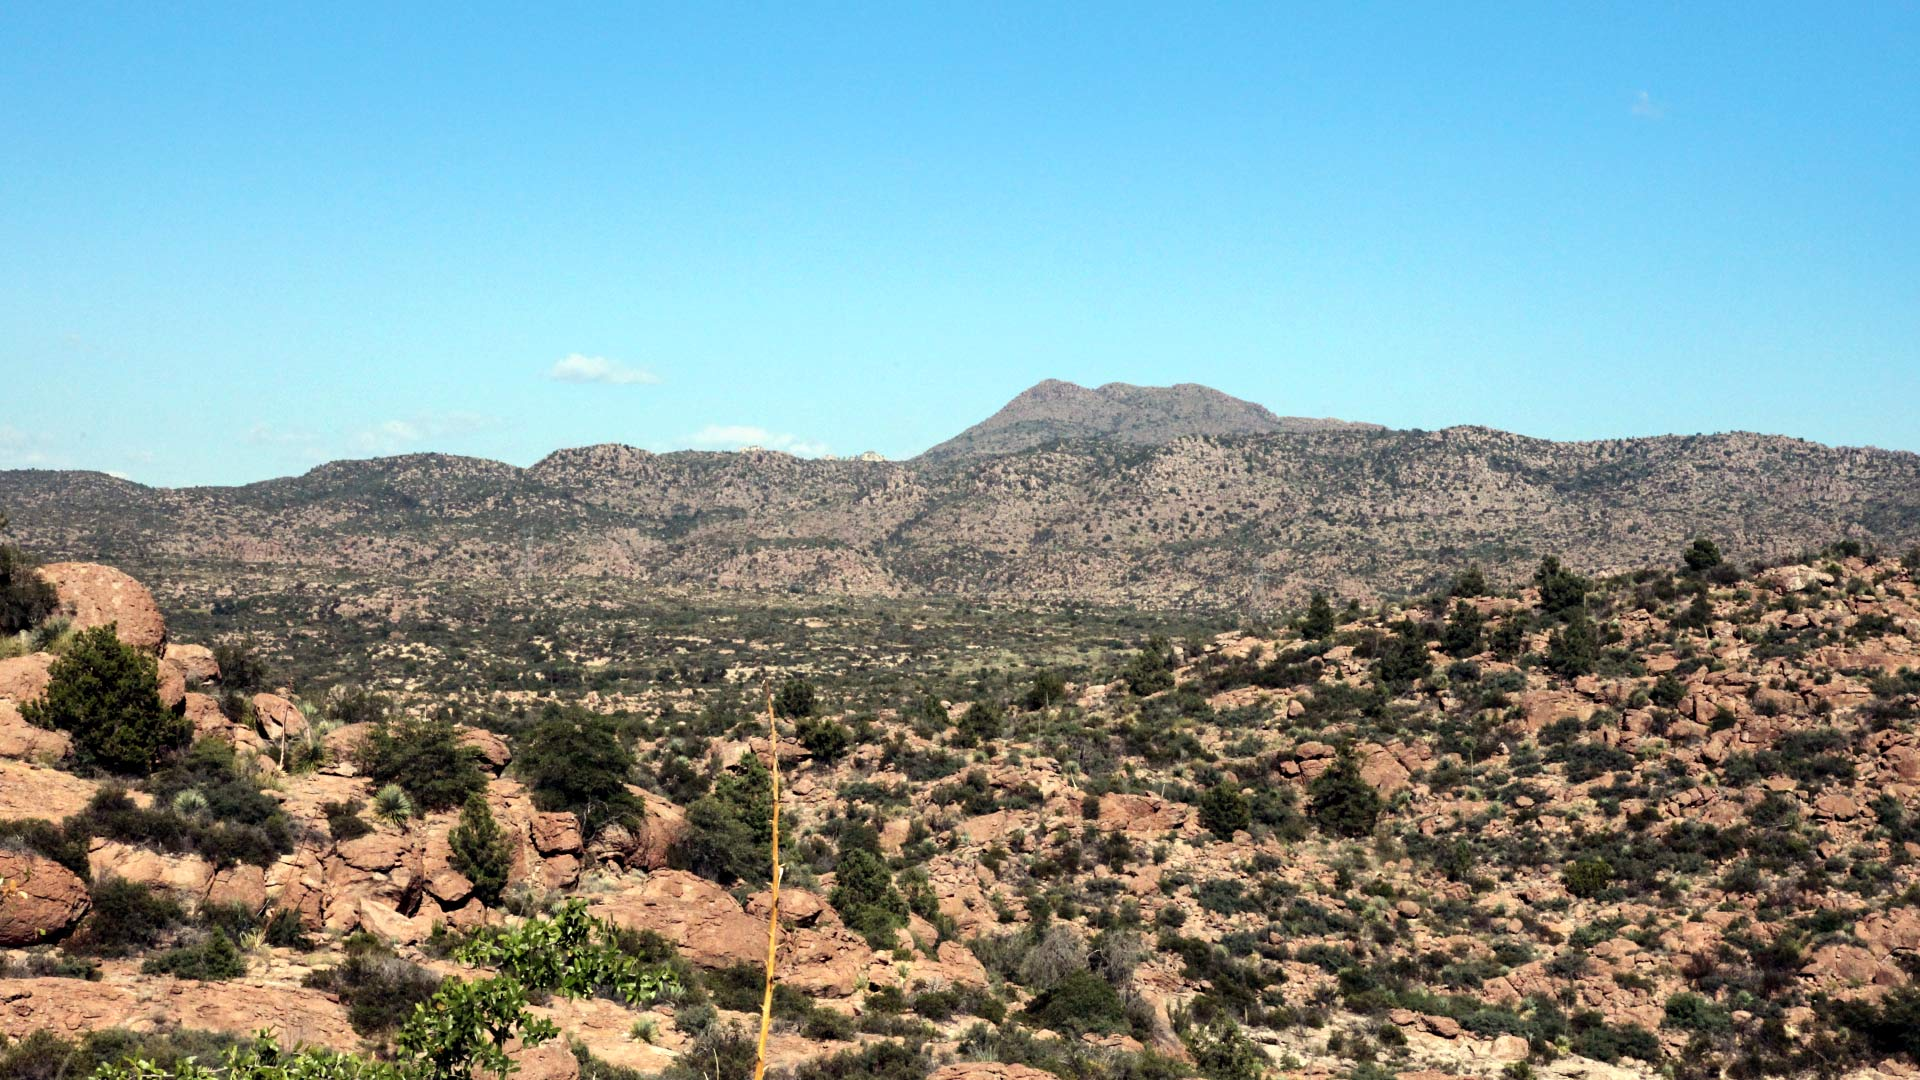 Oak Flat, east of Superior, Arizona. A company proposes to build one of the world's largest underground copper mines at this location.